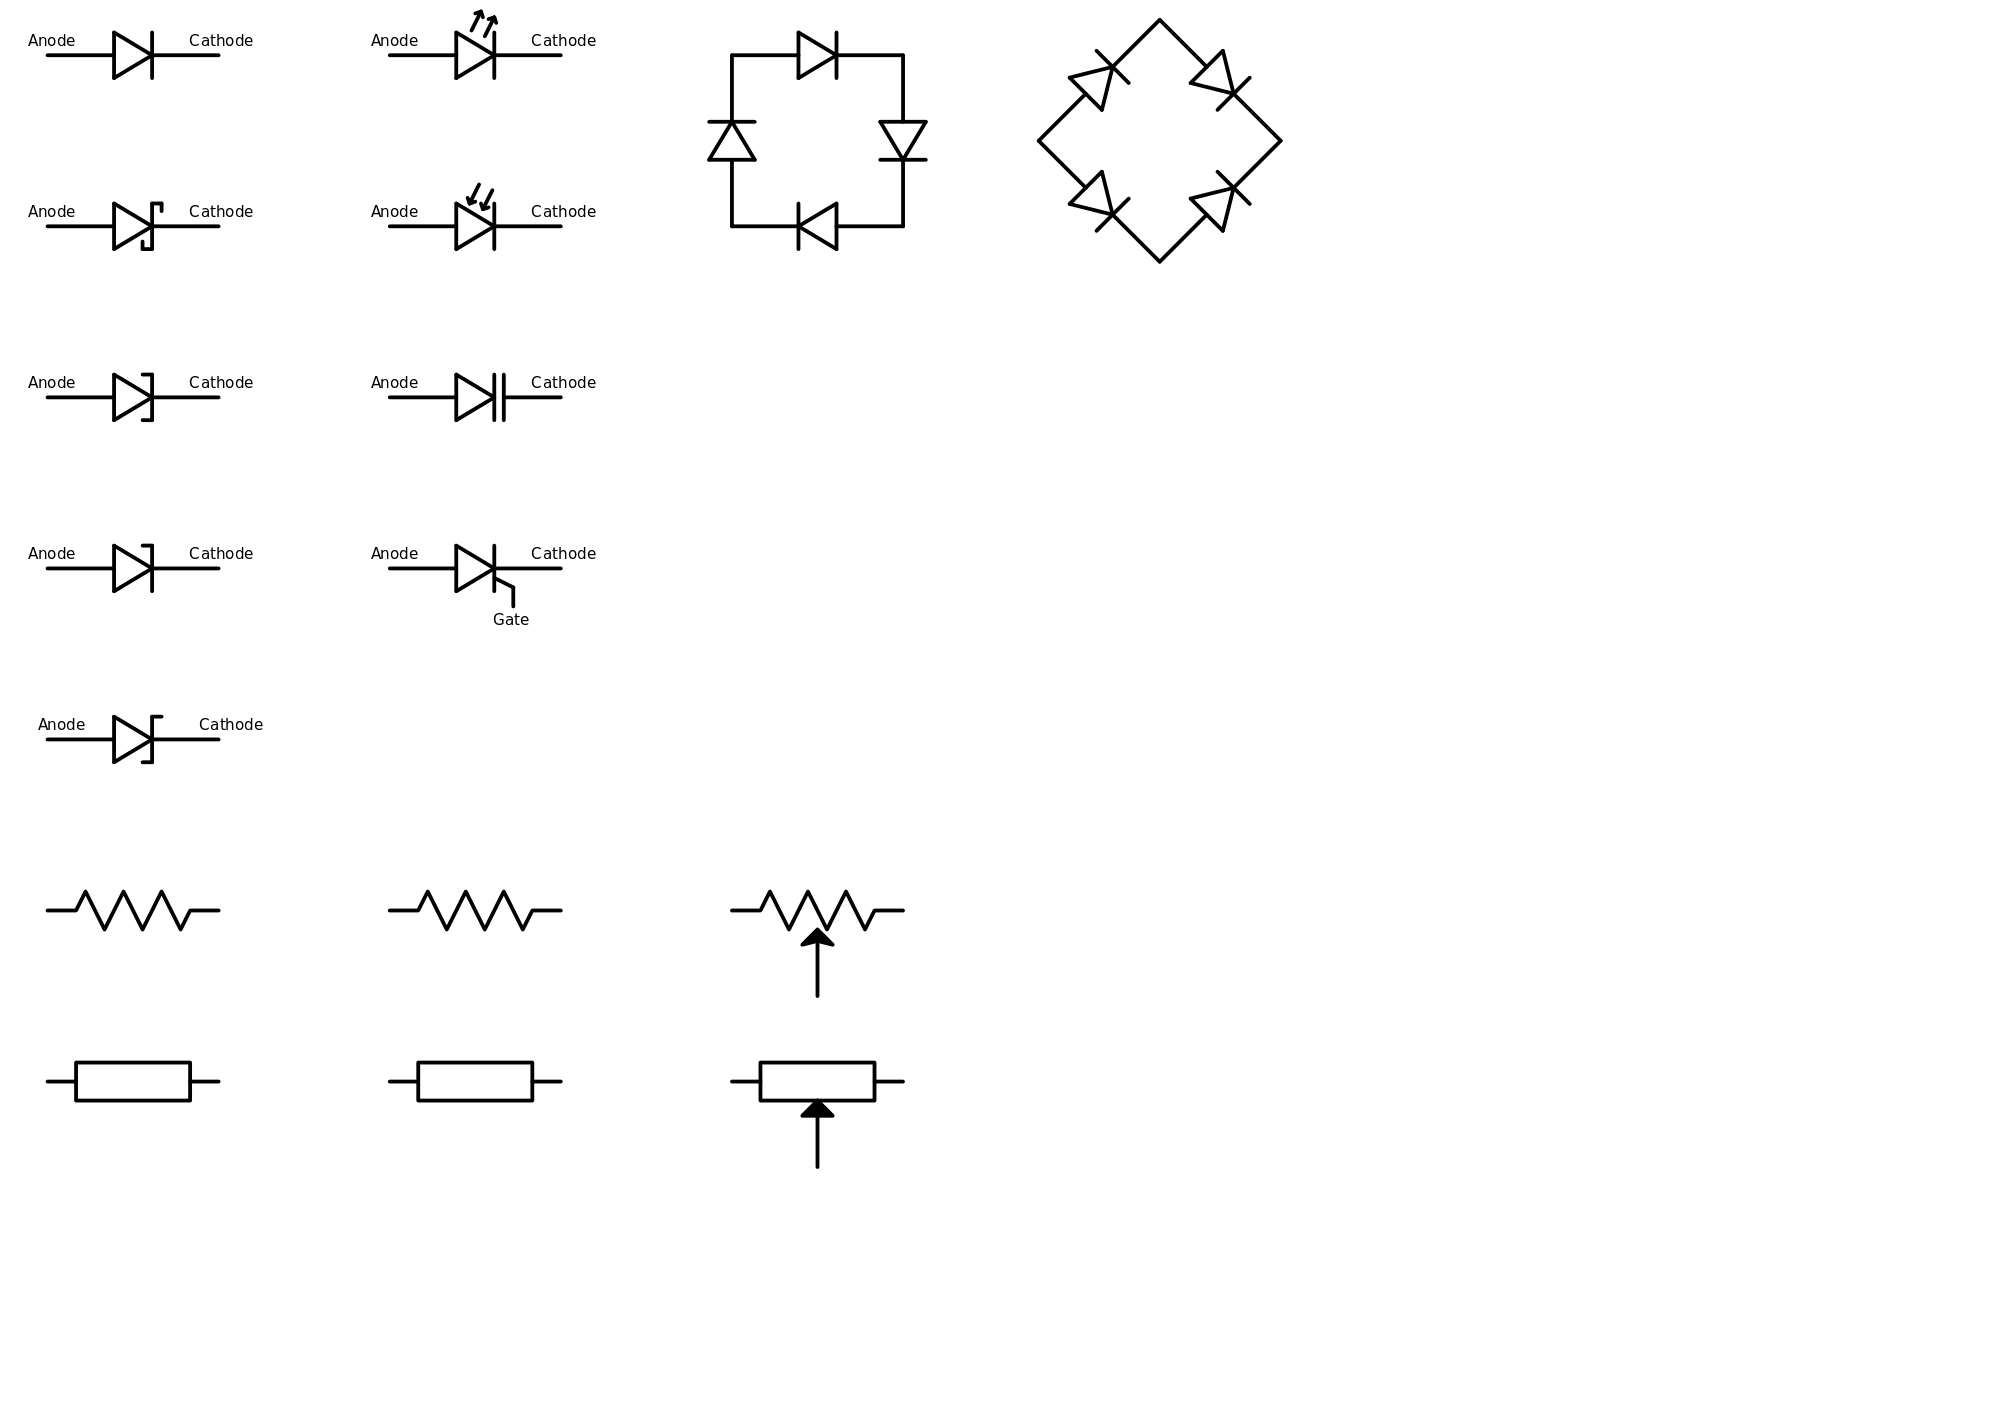 electrical symbols of different components